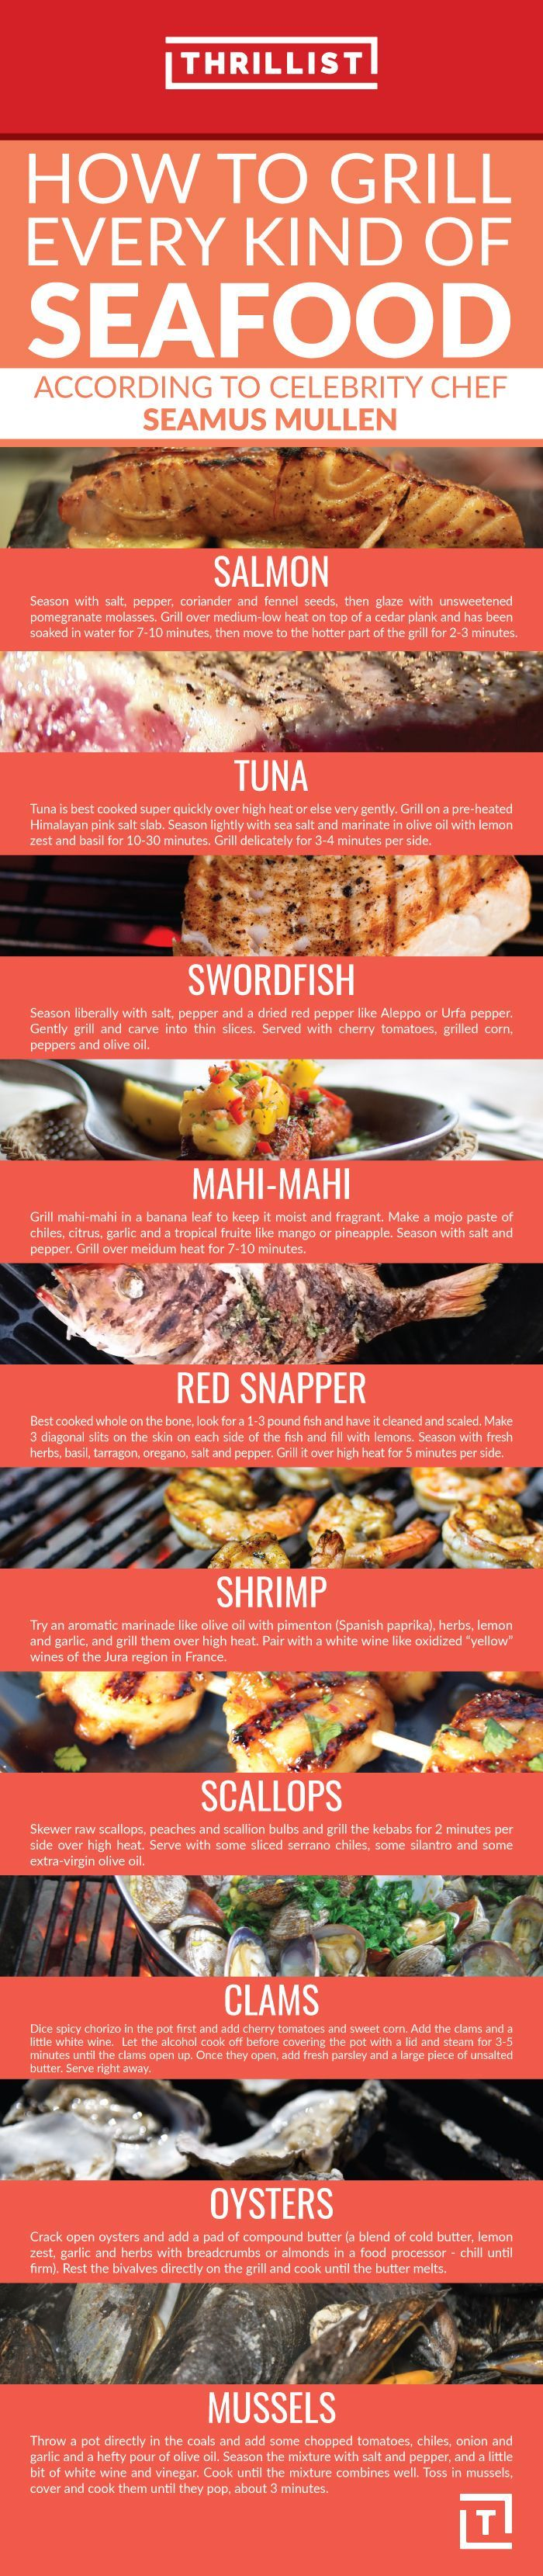 How To Grill Every Kind Of Seafood According To Seamus Mullen Grilled Seafood Seafood Seafood Recipes